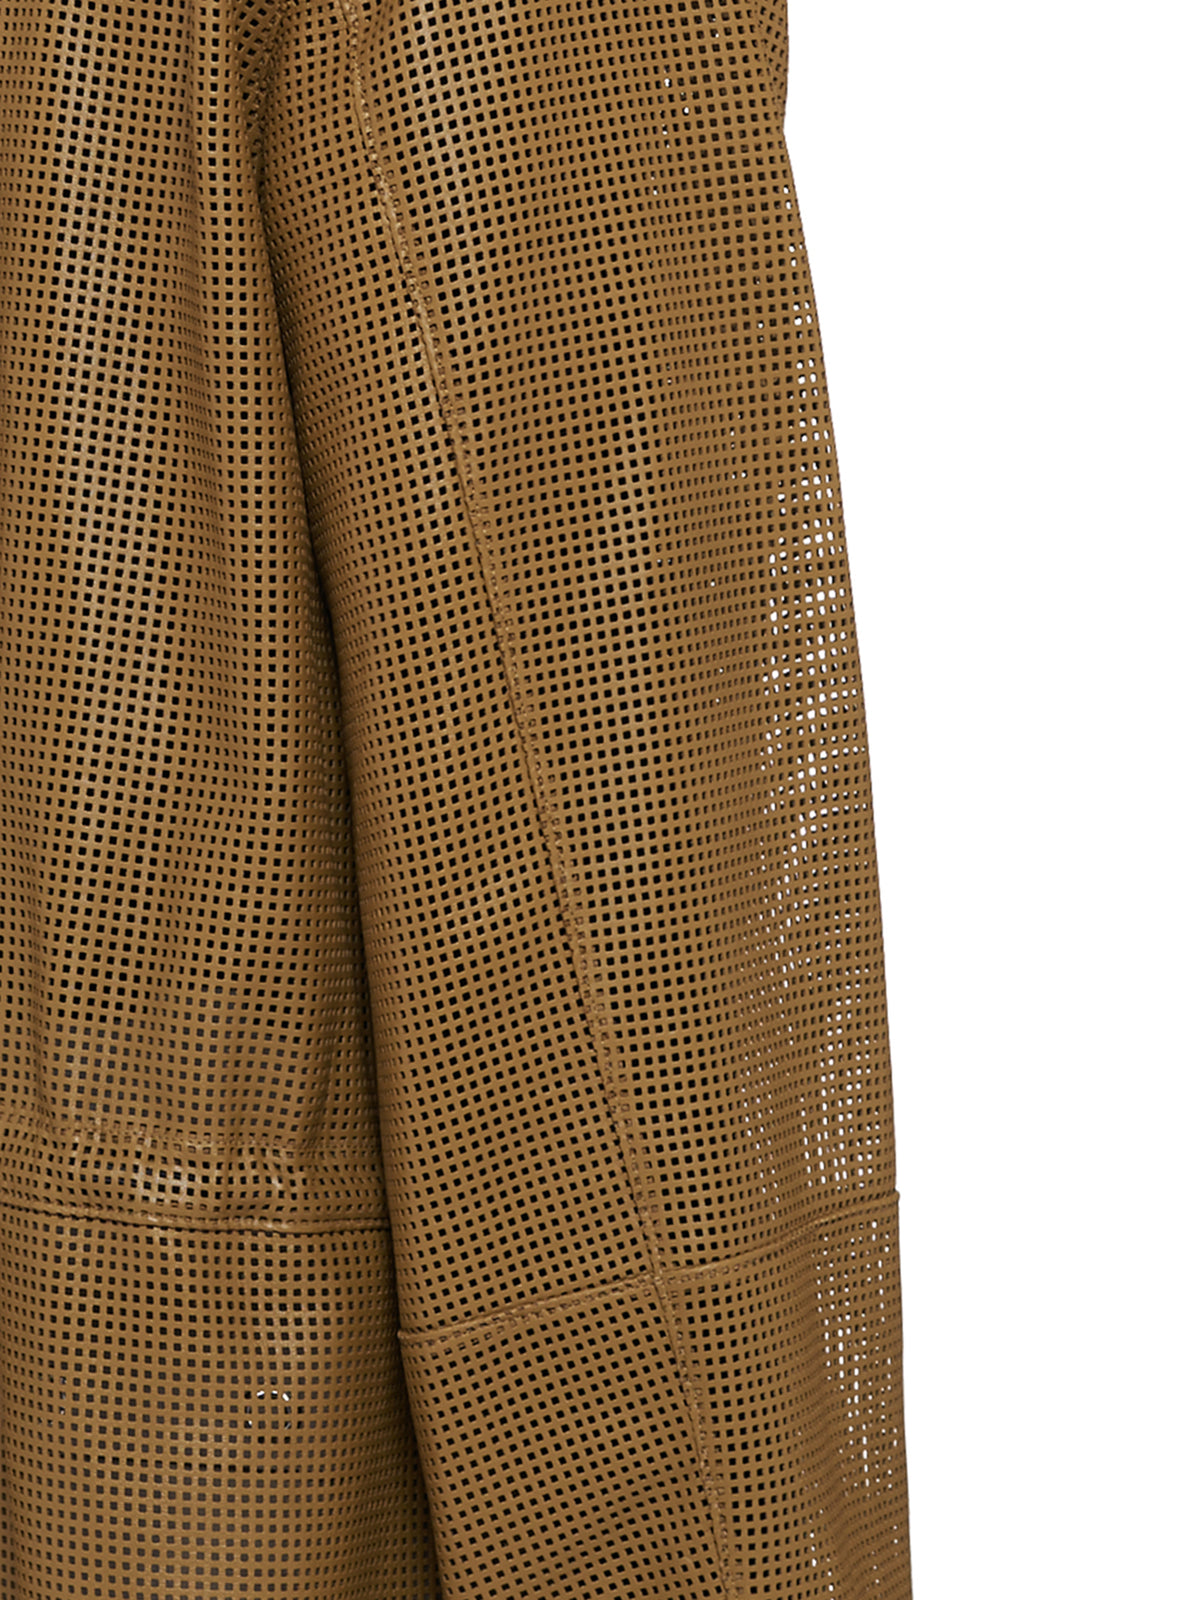 Bottega Veneta Coat | H.Lorenzo Detail 2